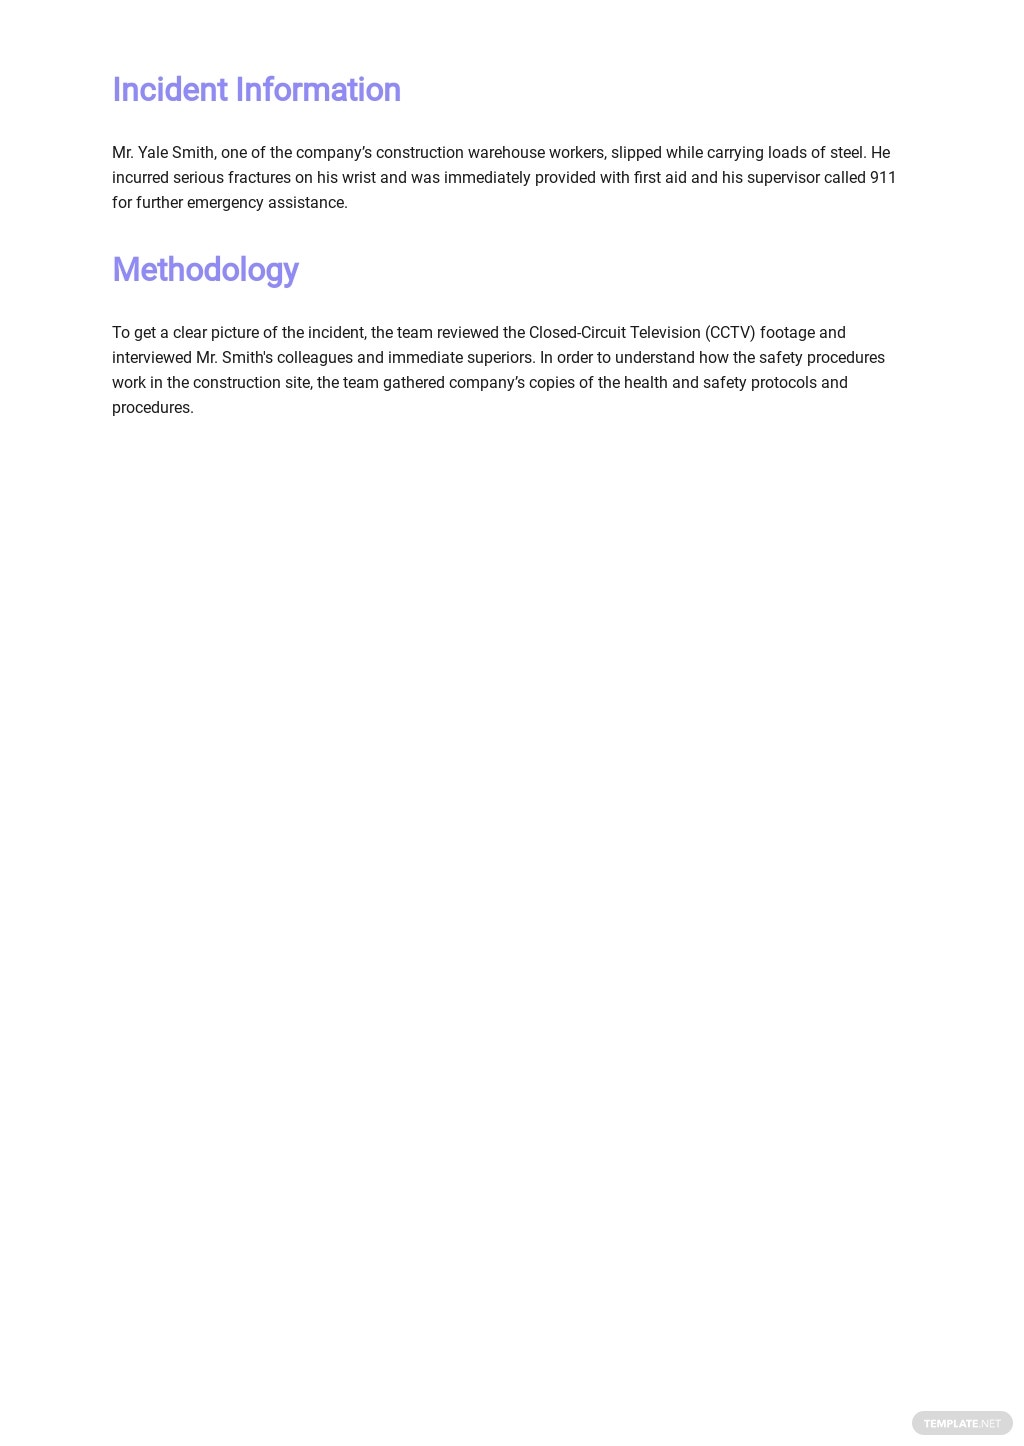 Workplace Investigation Report Template [Free PDF] - Google Docs, Word